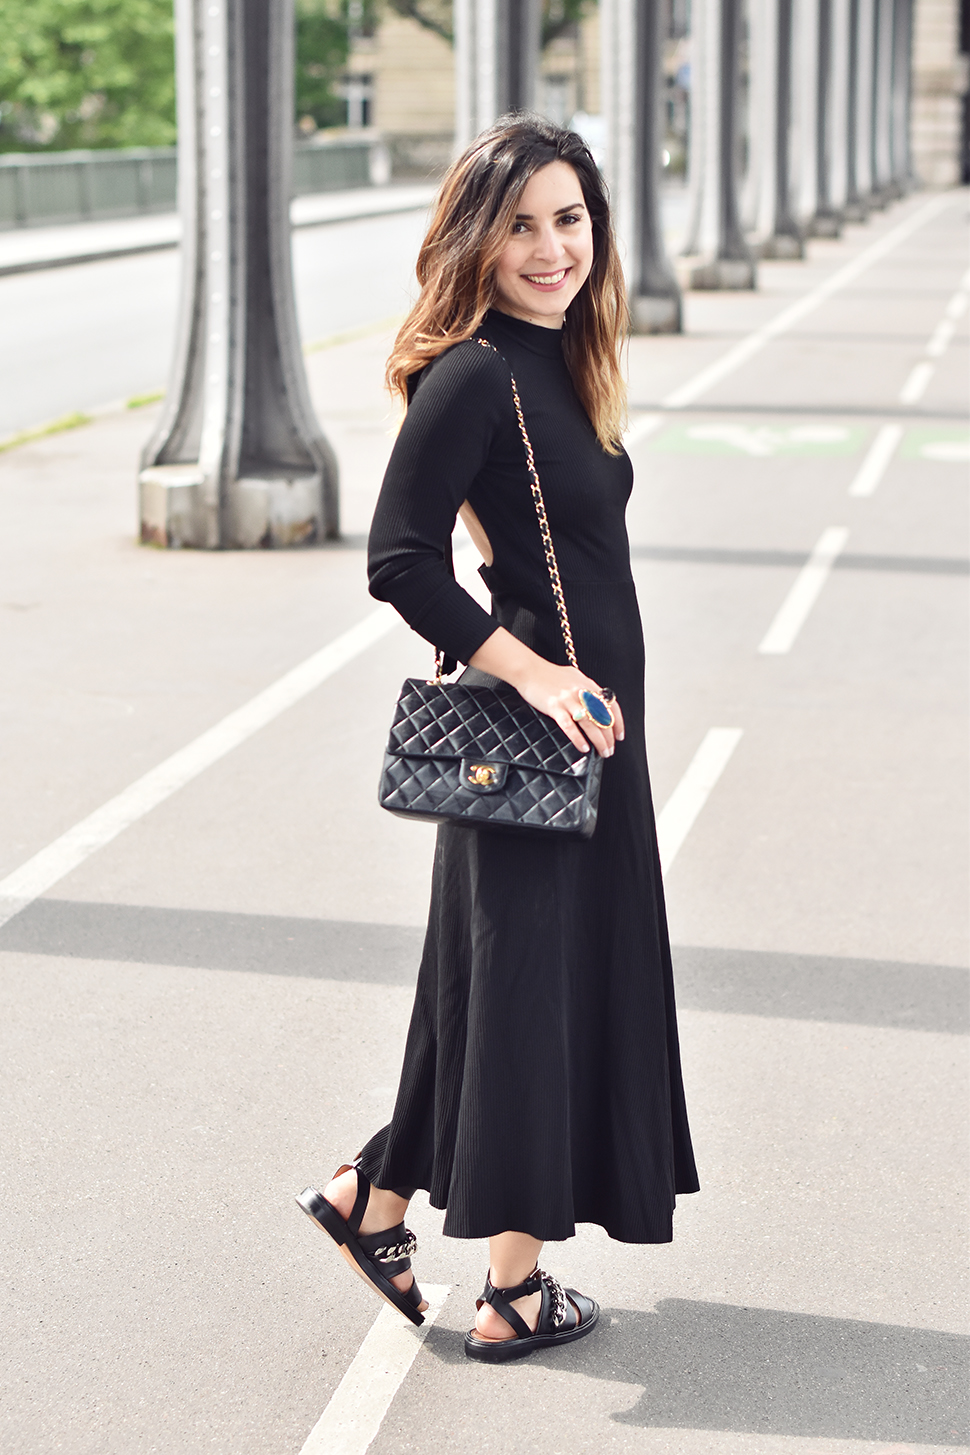 Helloitsvalentine_blackdress_BirHakeim_Givenchy_sandals_15